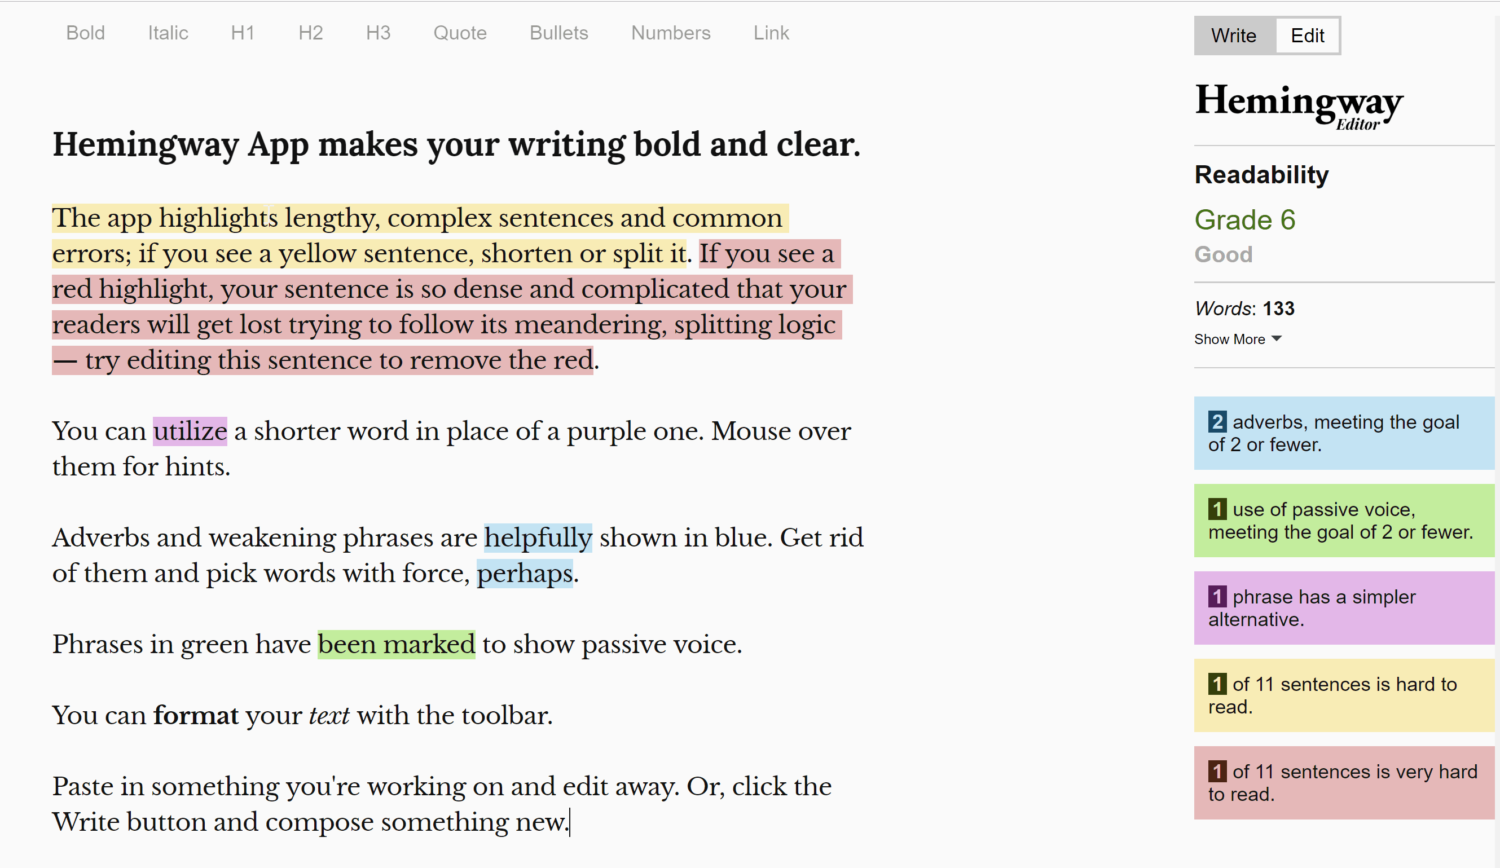 The Right Way to Write : Focus on Readability